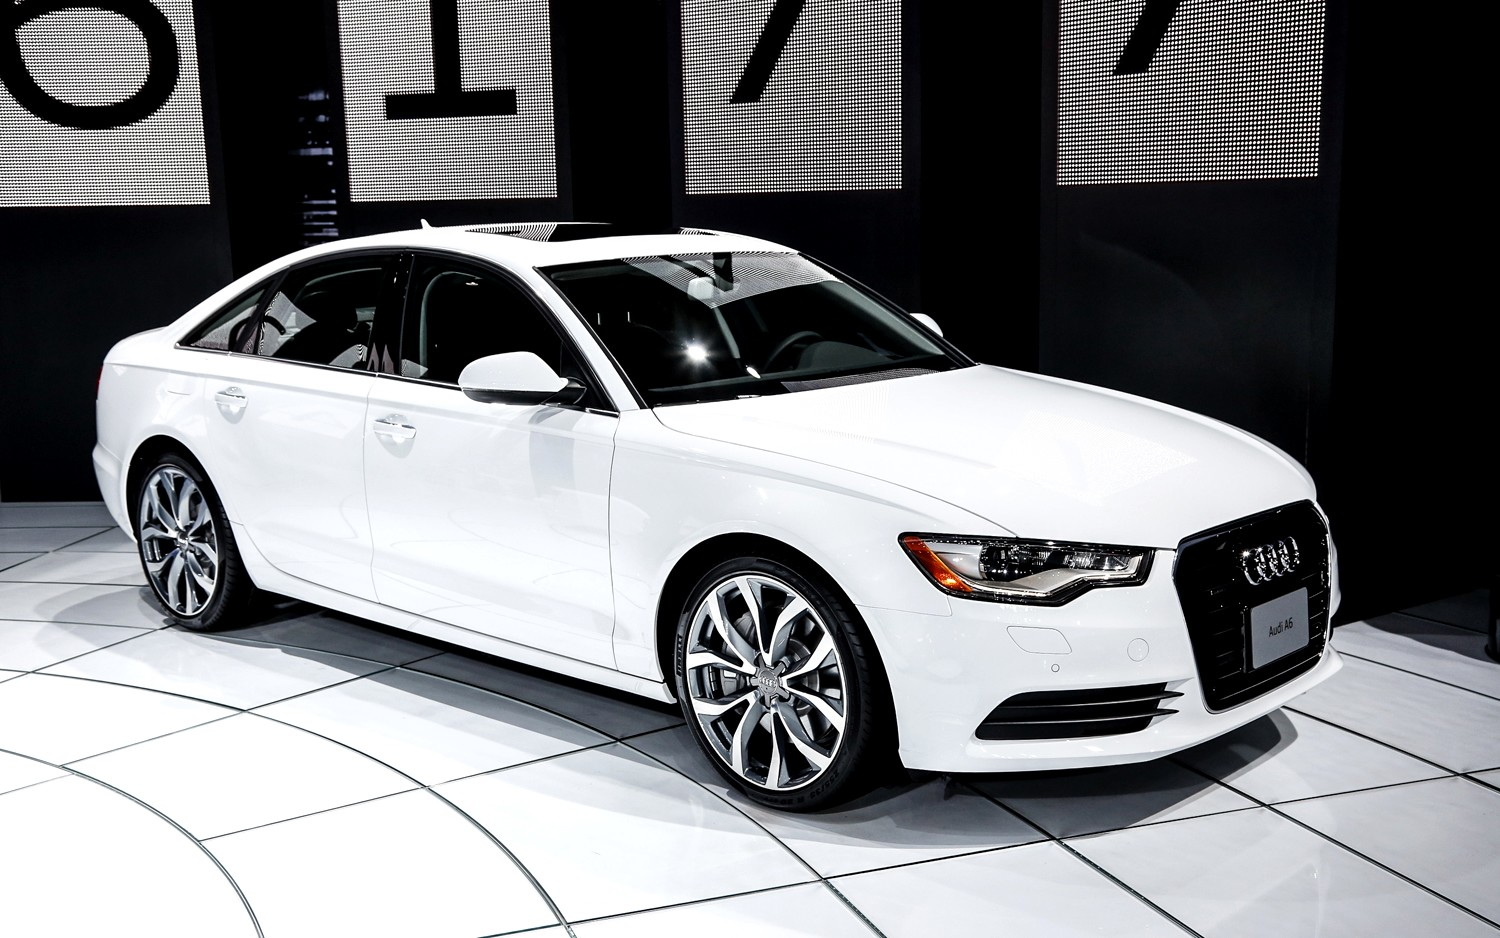 Free Download Audi A6 Wallpapers Hd Download 1500x938 For Your Desktop Mobile Tablet Explore 98 Audi A6 Wallpapers Audi A6 Wallpapers Audi A6 Allroad Audi A6 Wallpaper